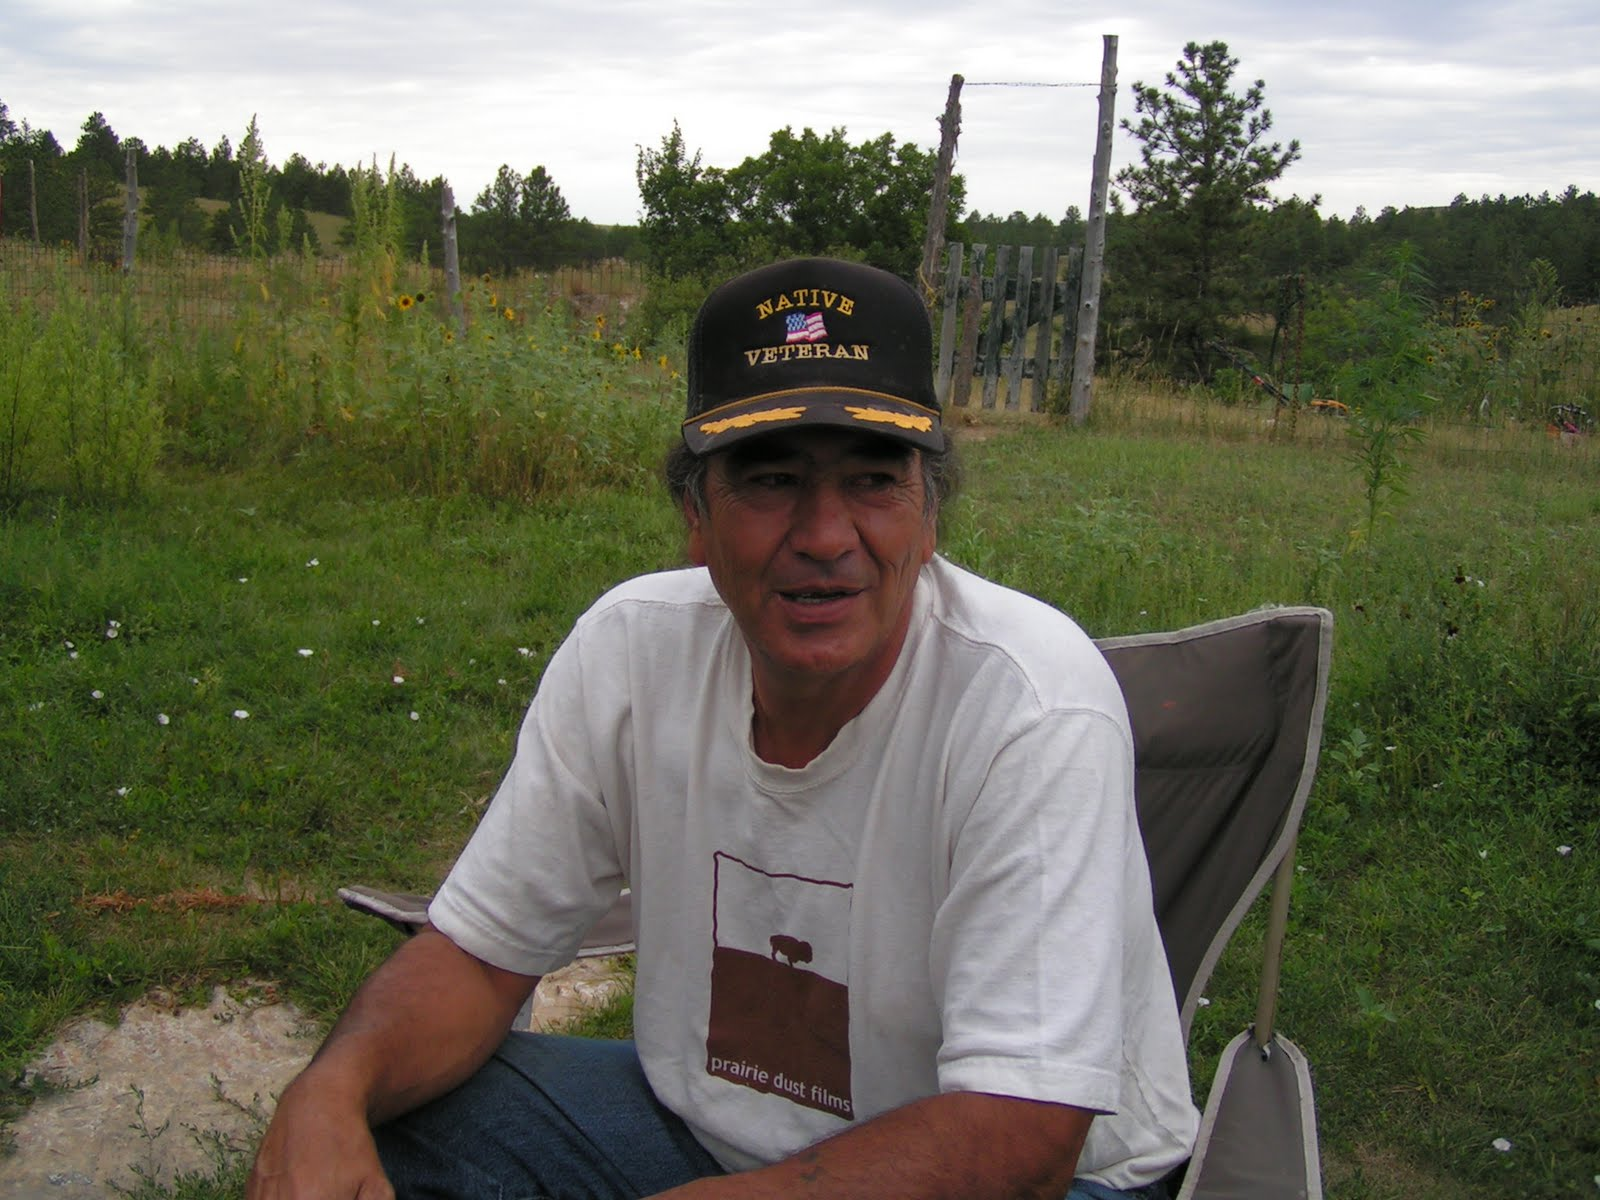 Alex White Plume asks court for permission to plant hemp crop